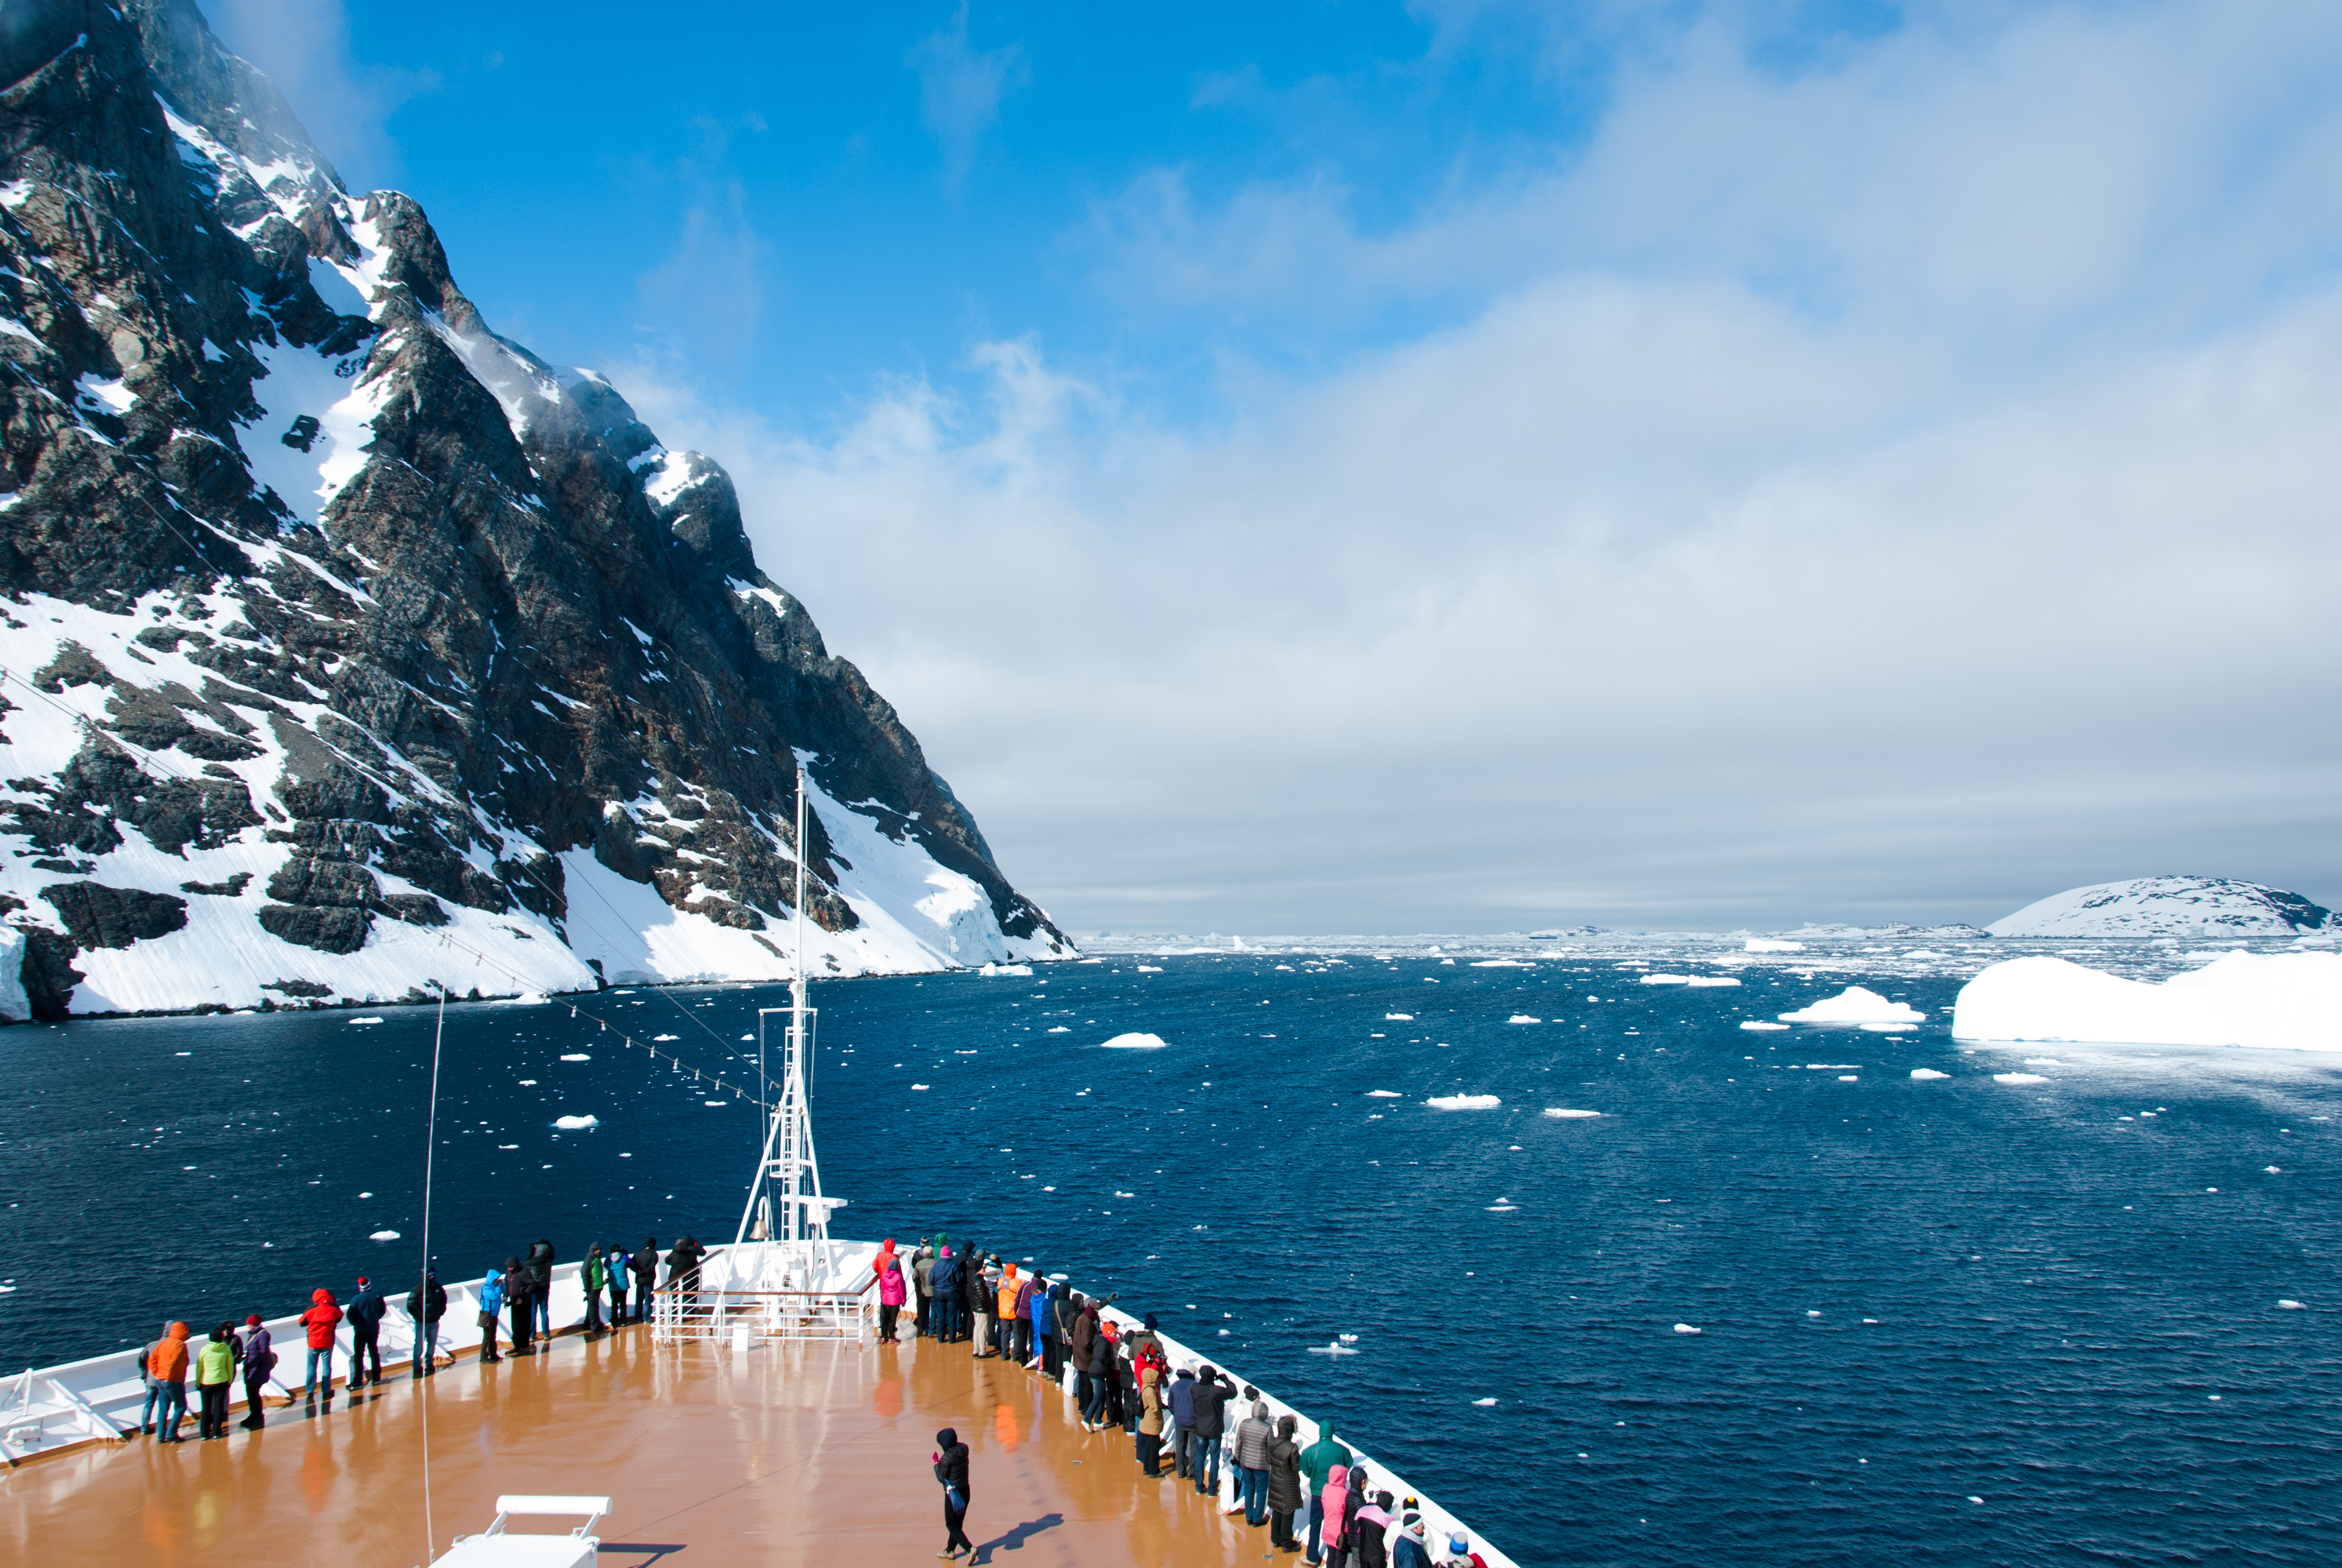 Hapag Lloyd Announces New Expedition Cruises to Arctic, North East Passage and Antarctica